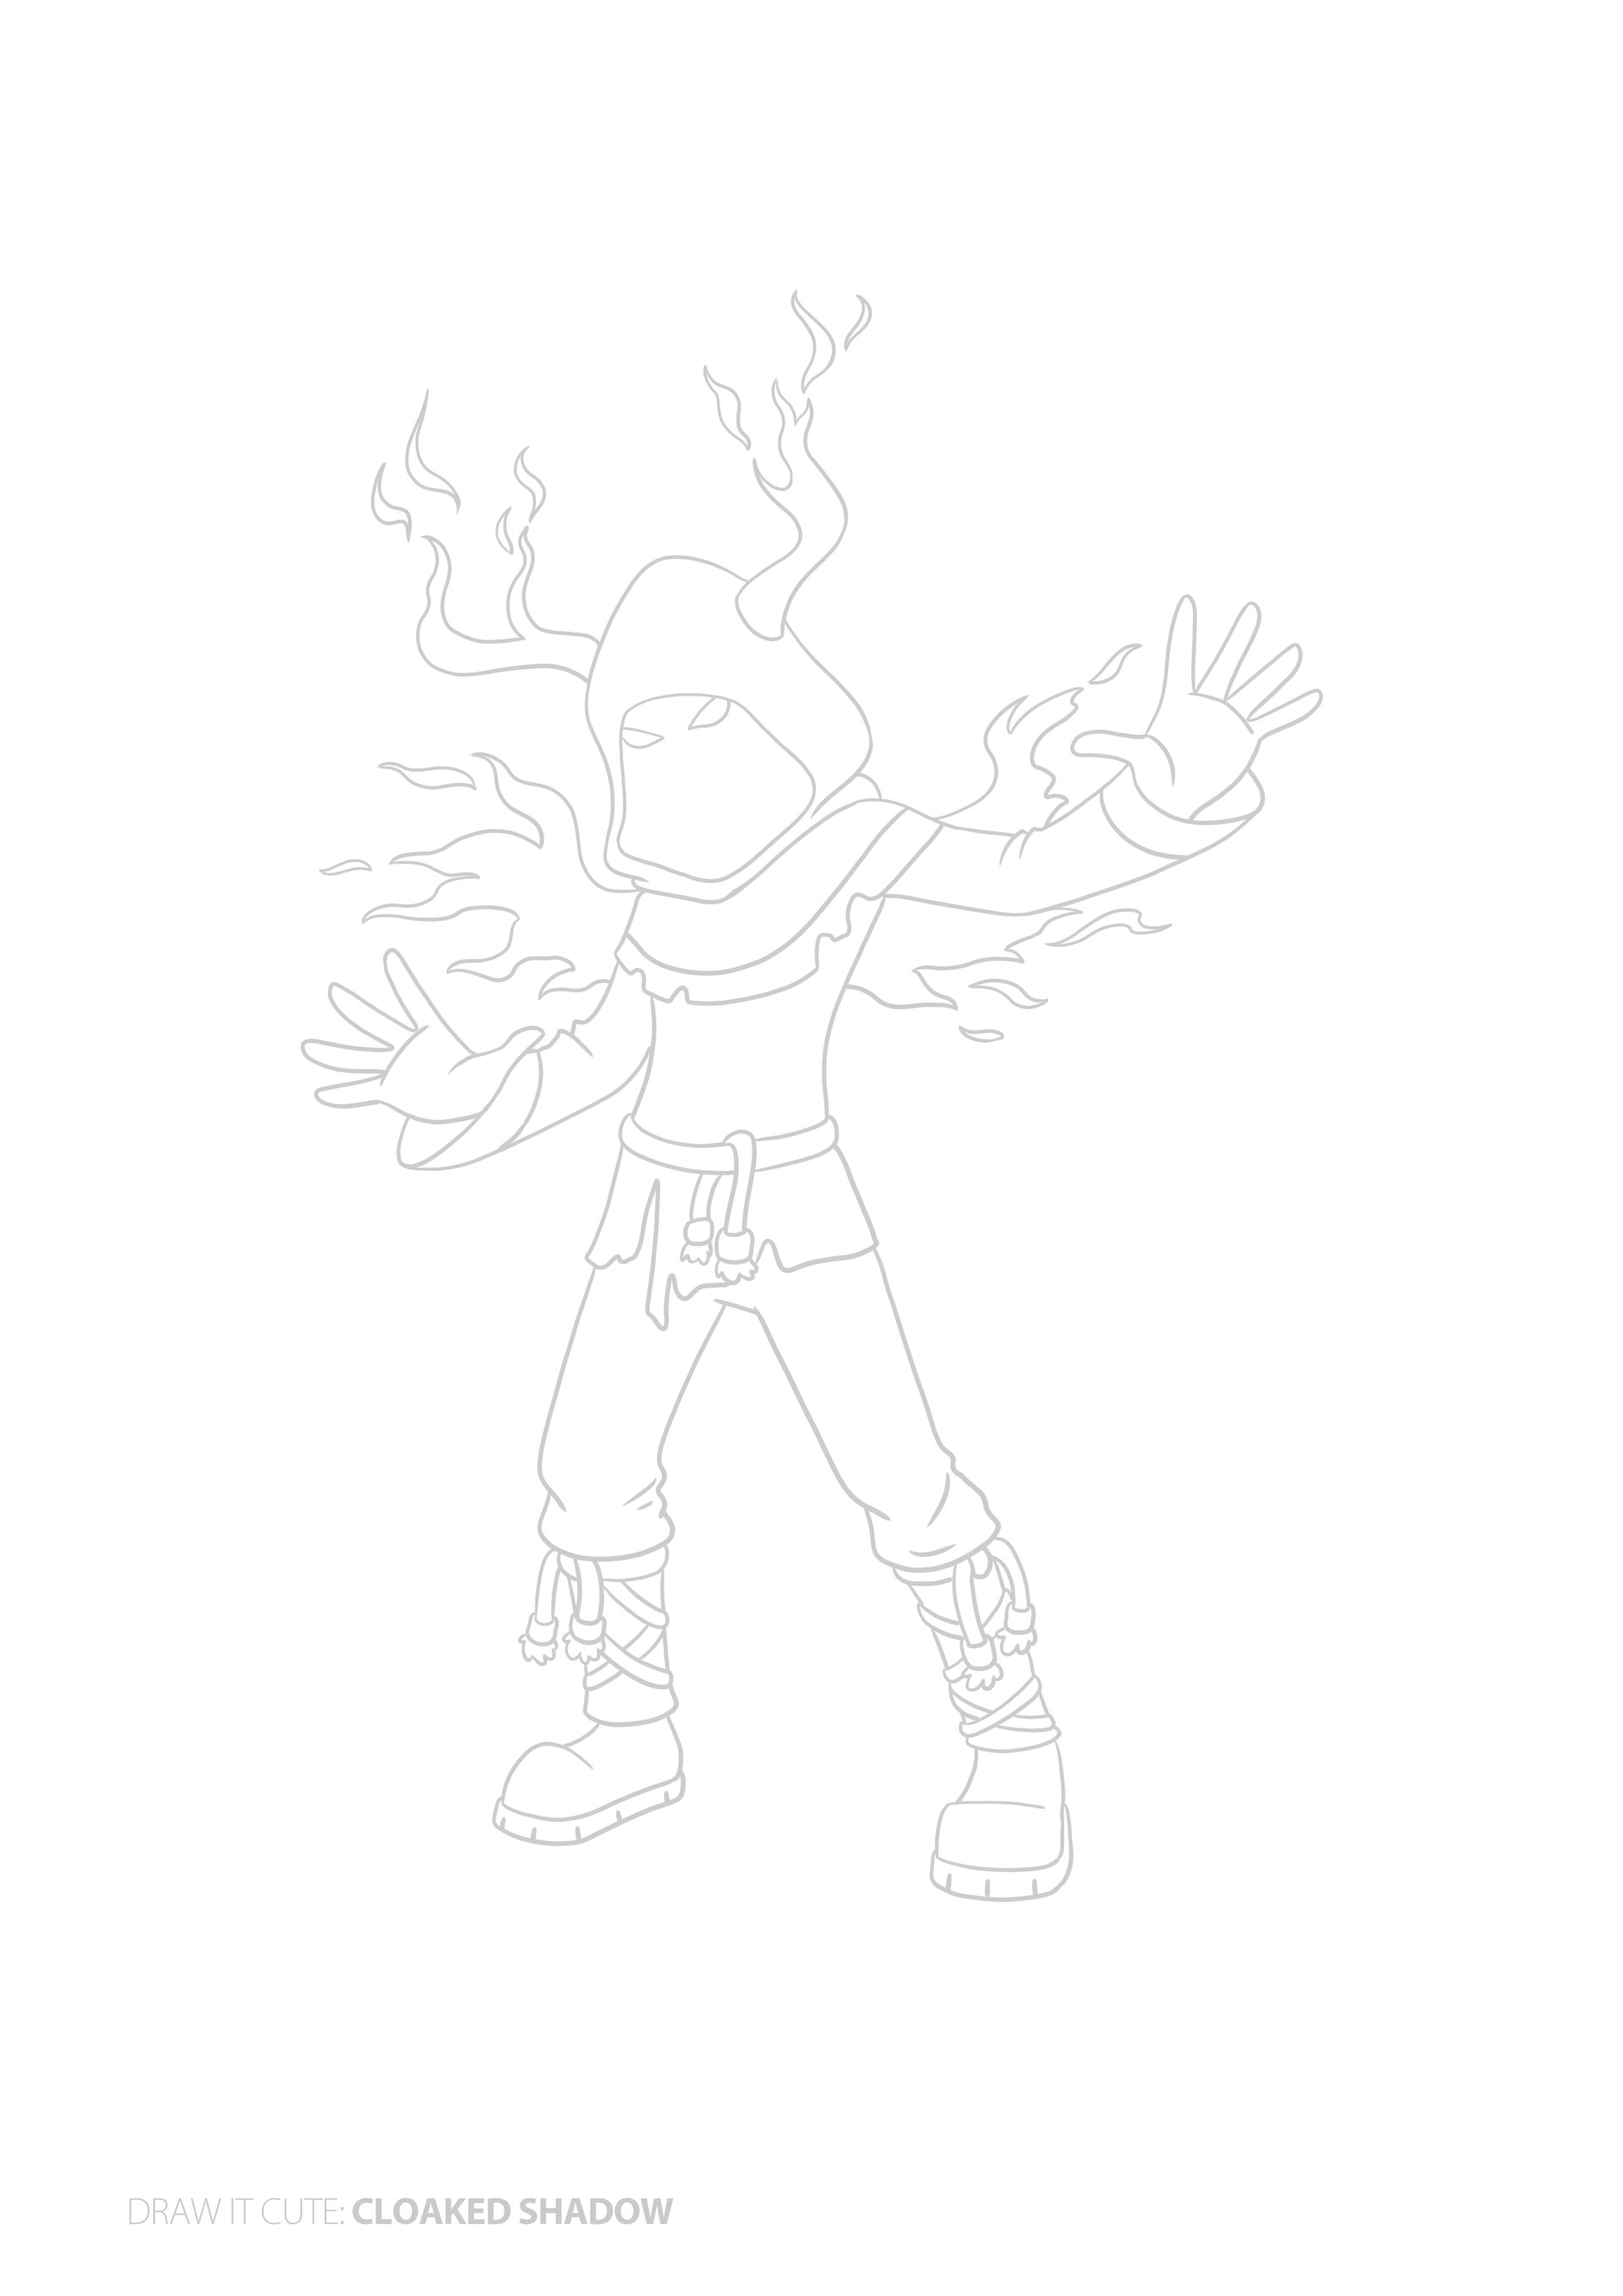 Cool Fortnite Pictures To Draw Easy Coloring Pages For Kids